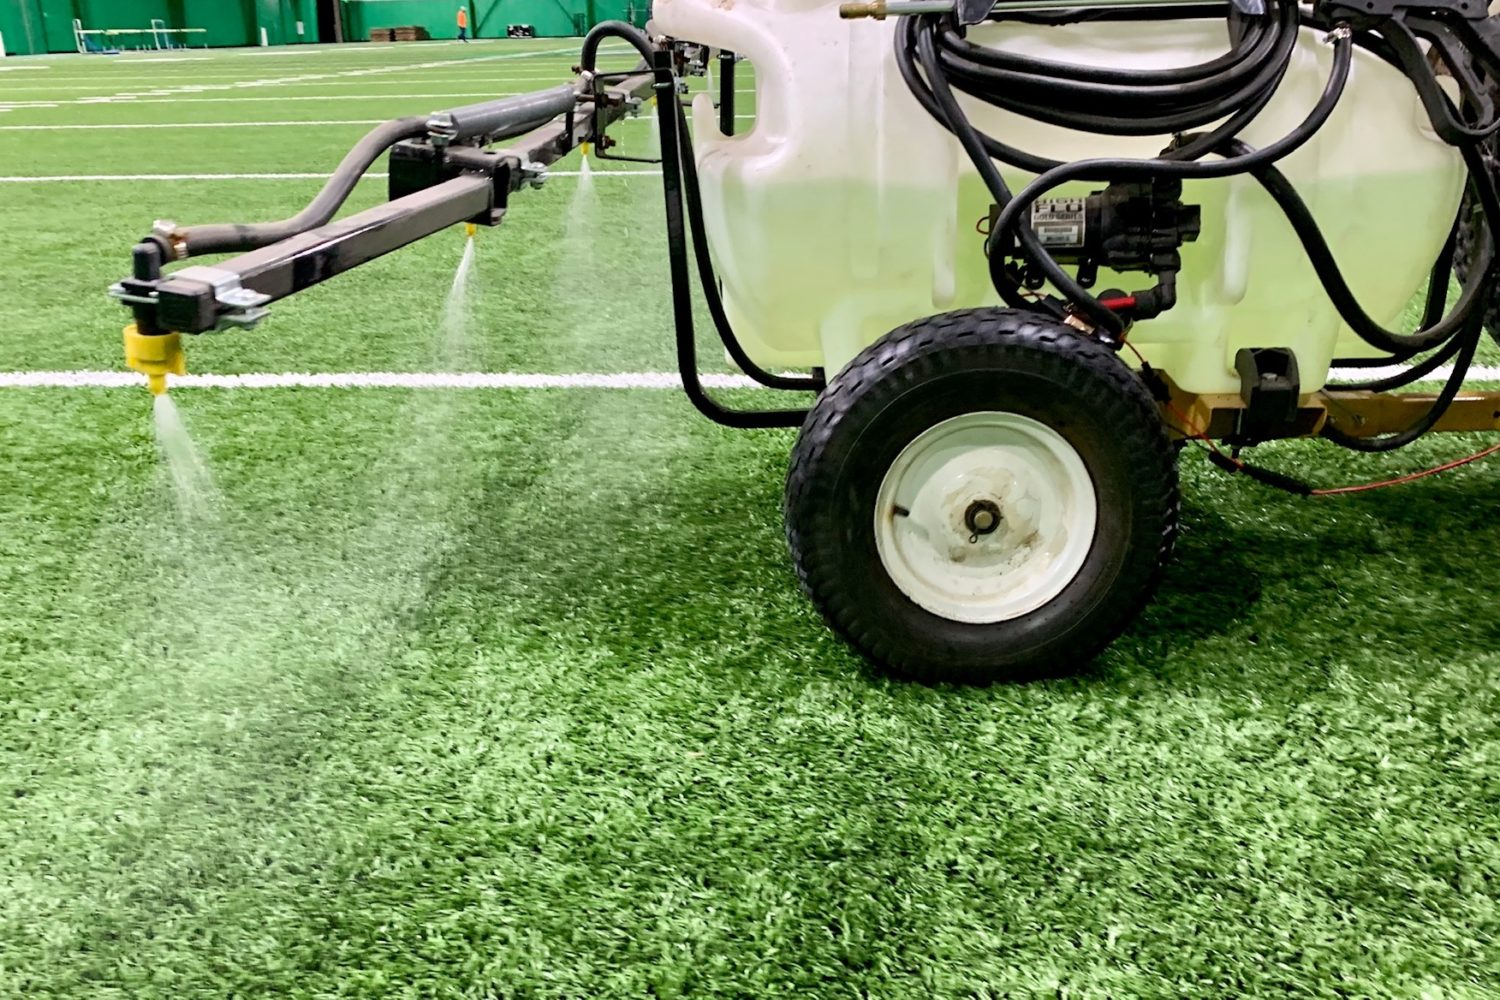 We offer artificial turf disinfectant as part of our artificial turf maintenance program